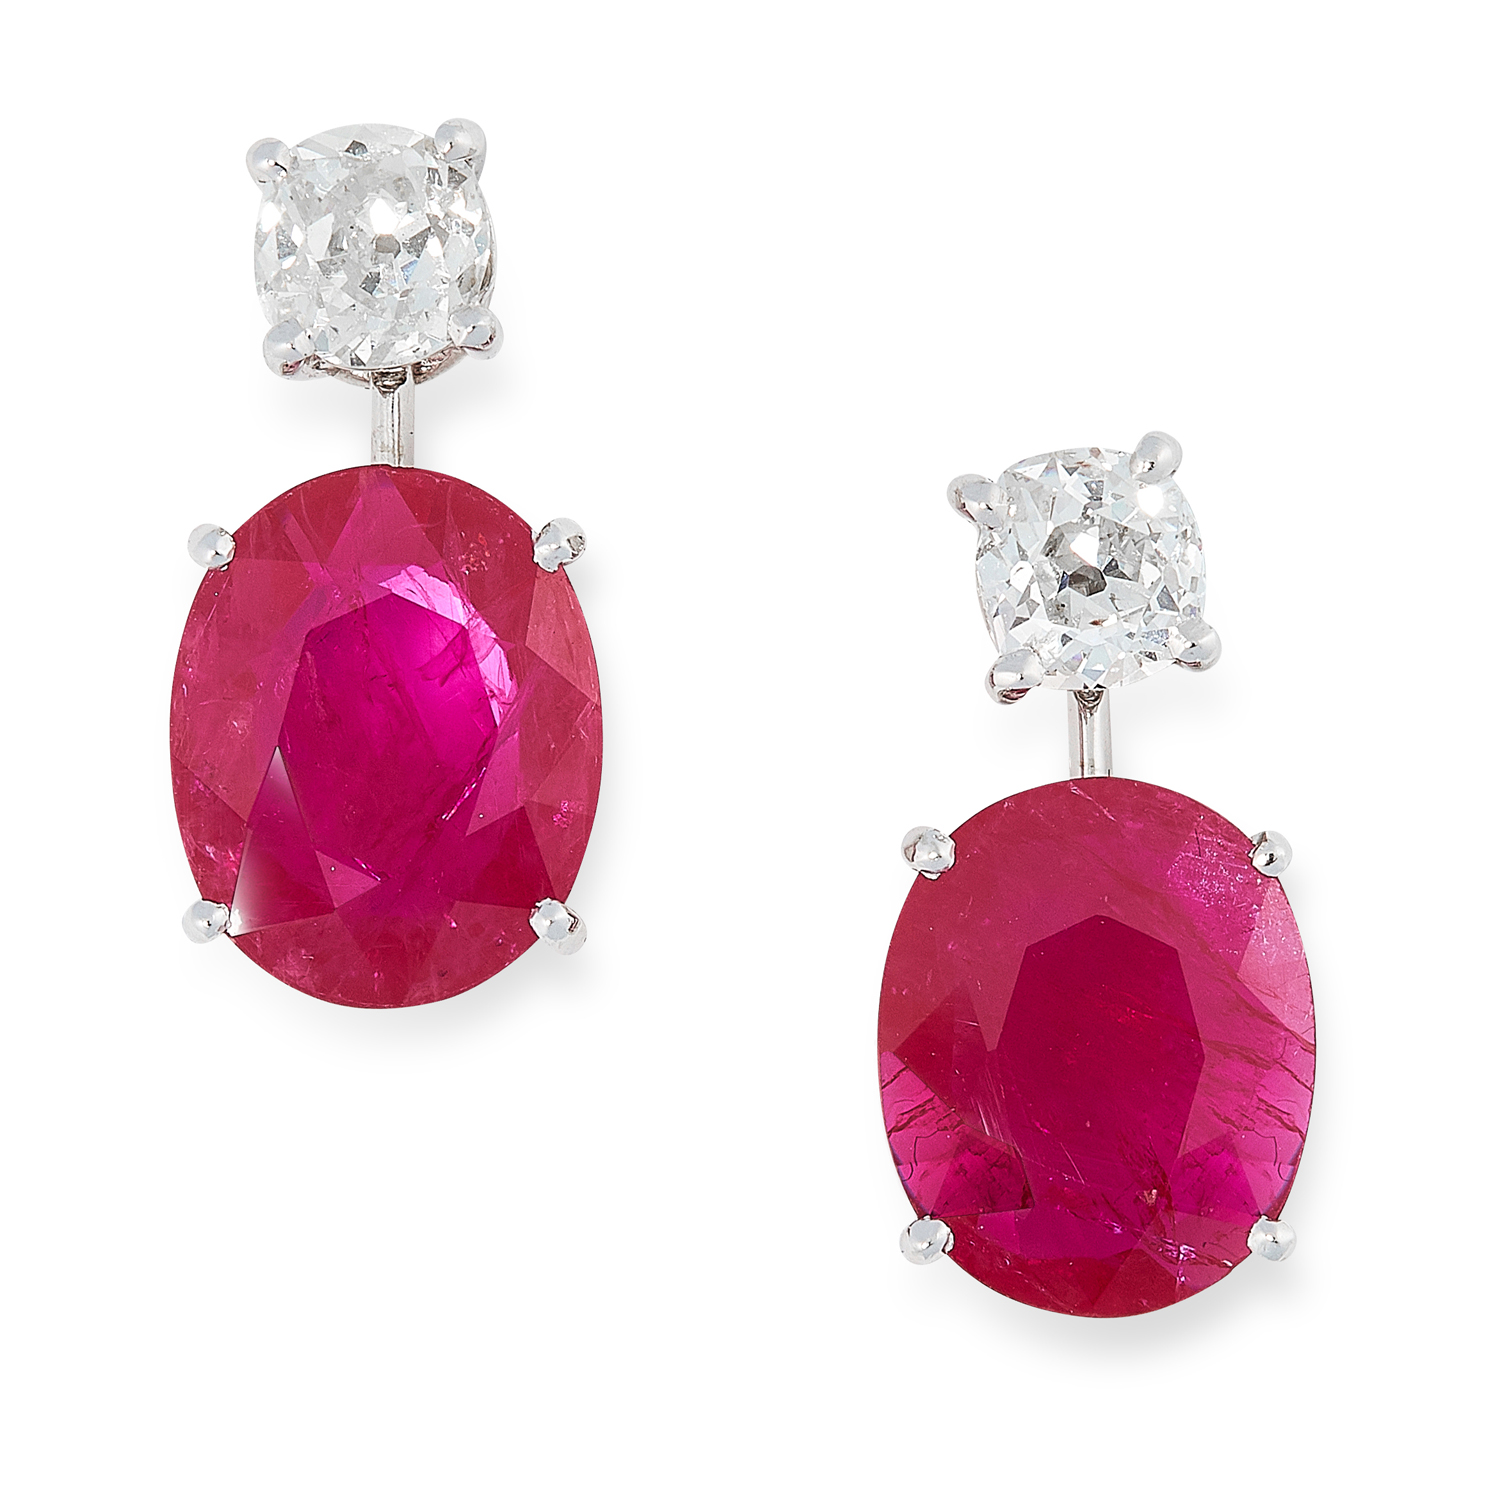 A PAIR OF RUBY AND DIAMOND EARRINGS in high carat white gold, each set with an oval cut ruby below a